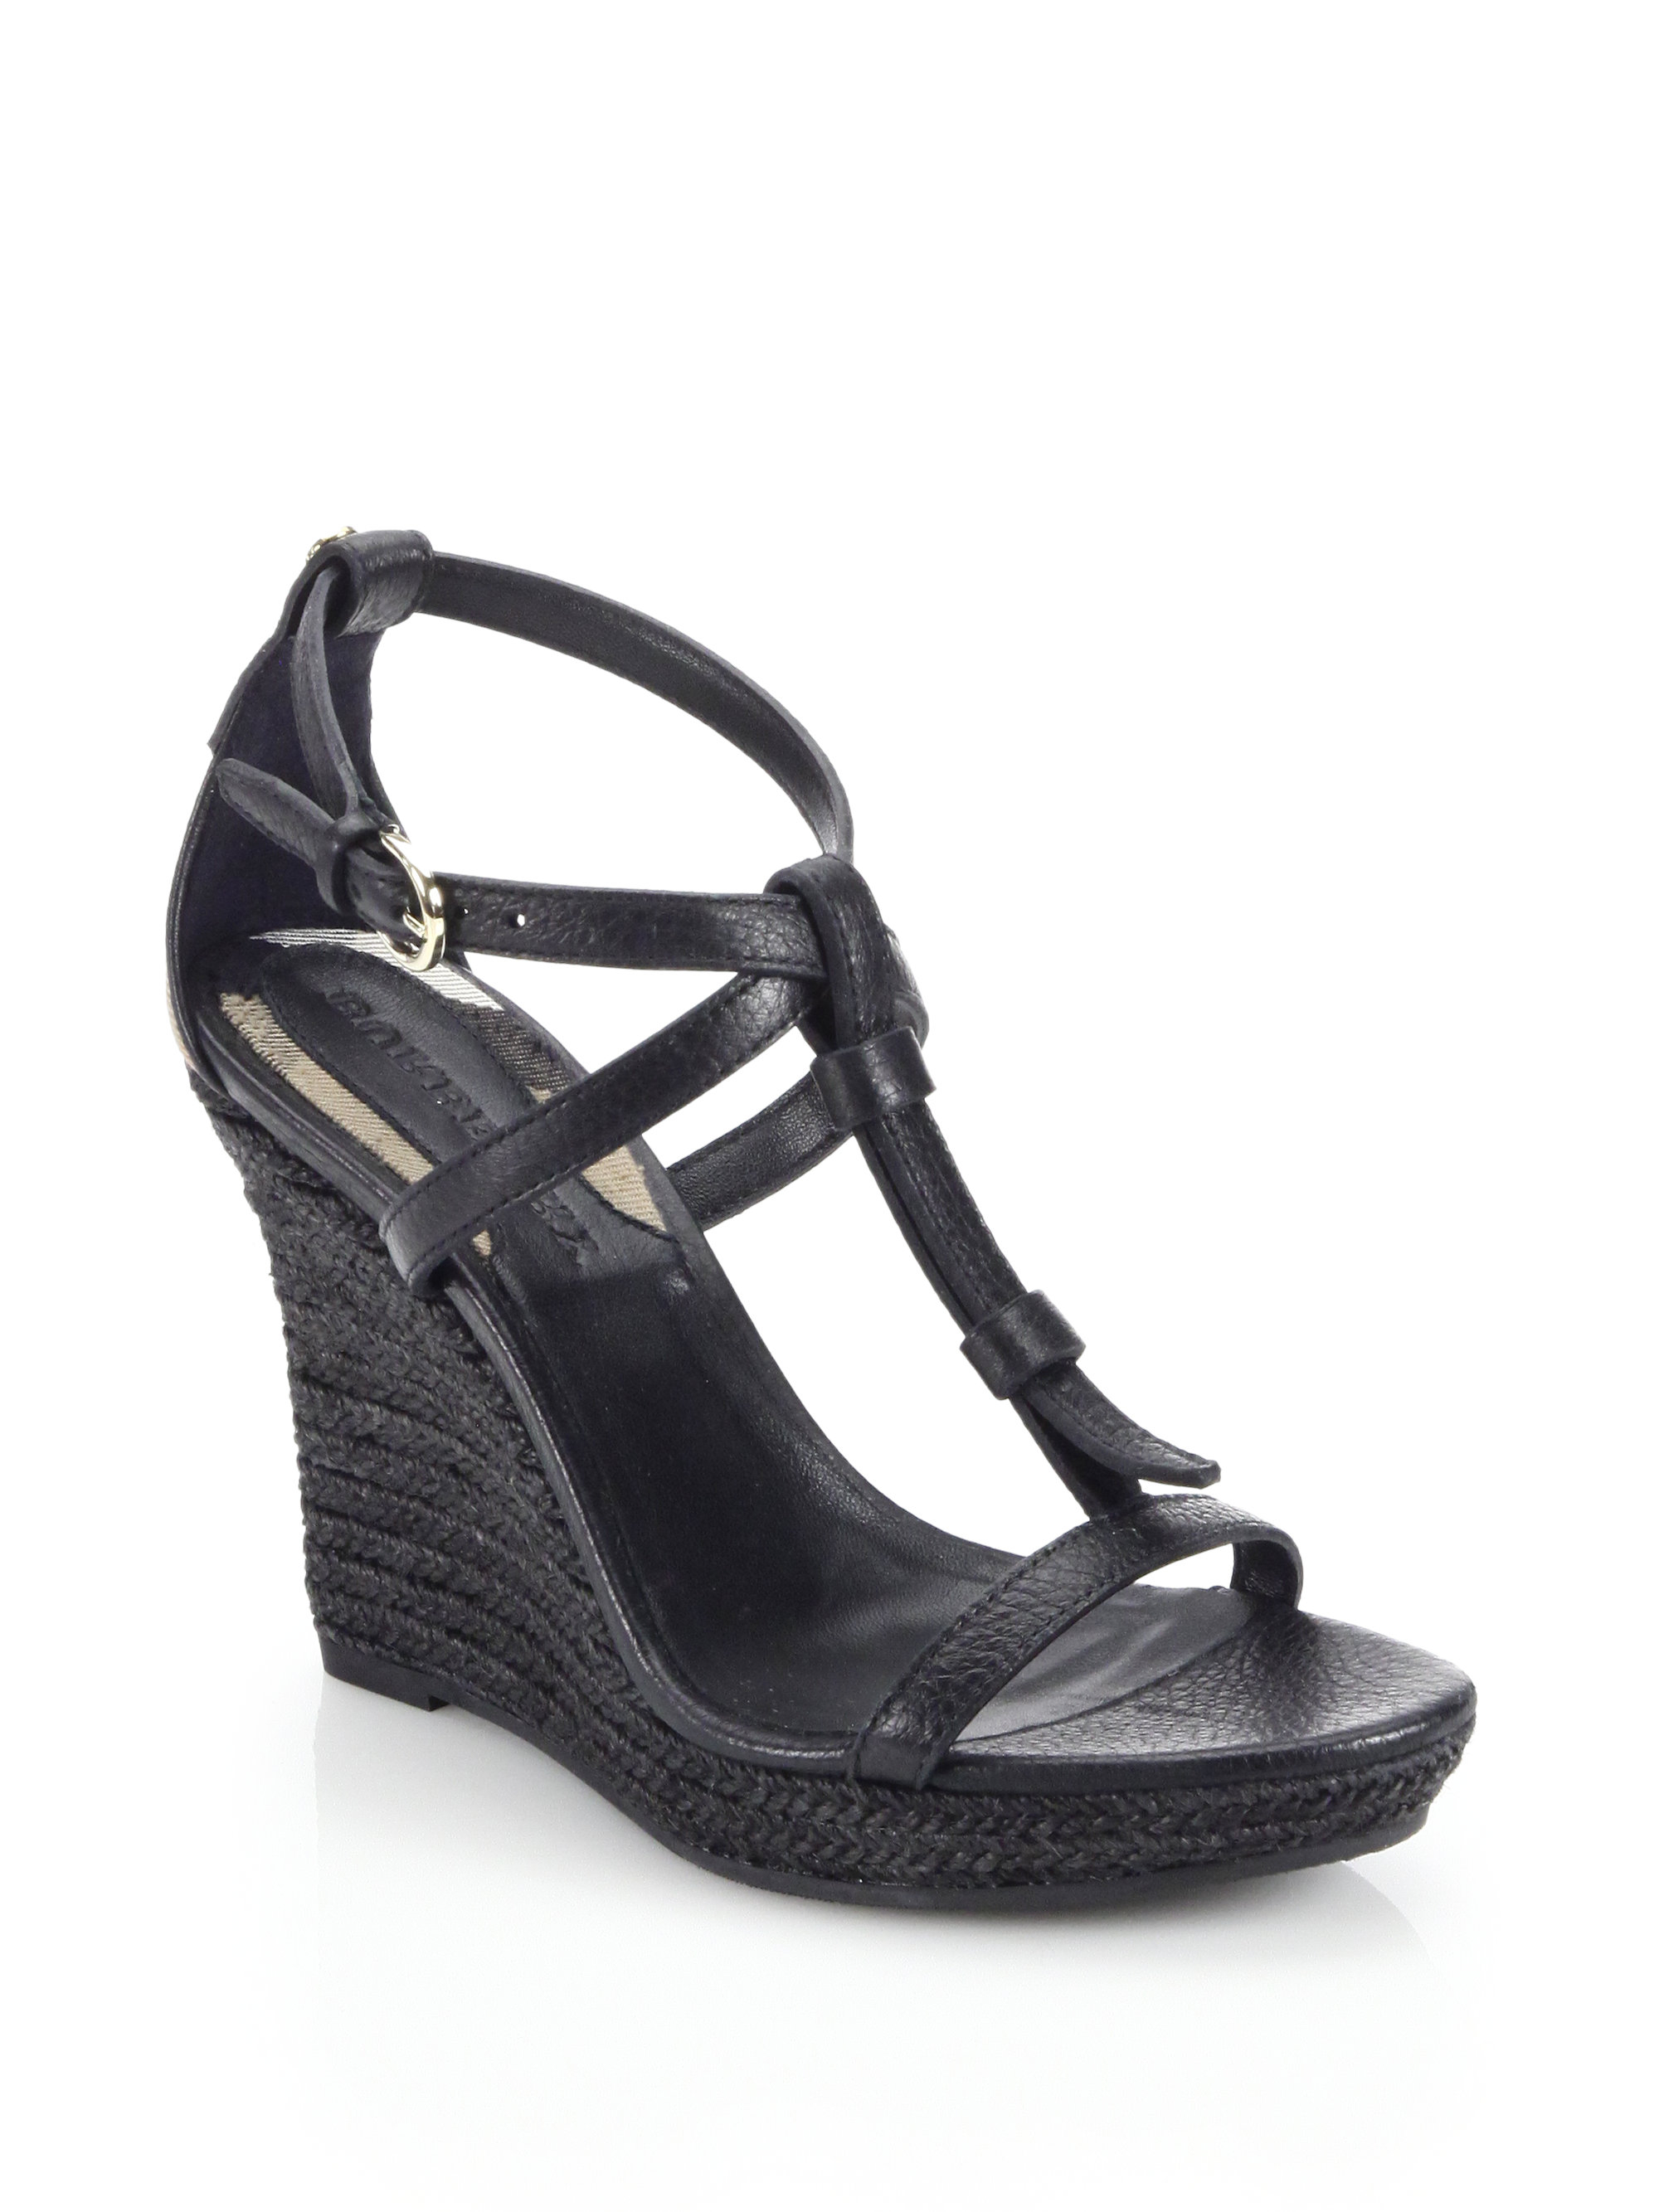 72658e53b12e Lyst - Burberry Wedland Leather Espadrille Wedge Sandals in Black